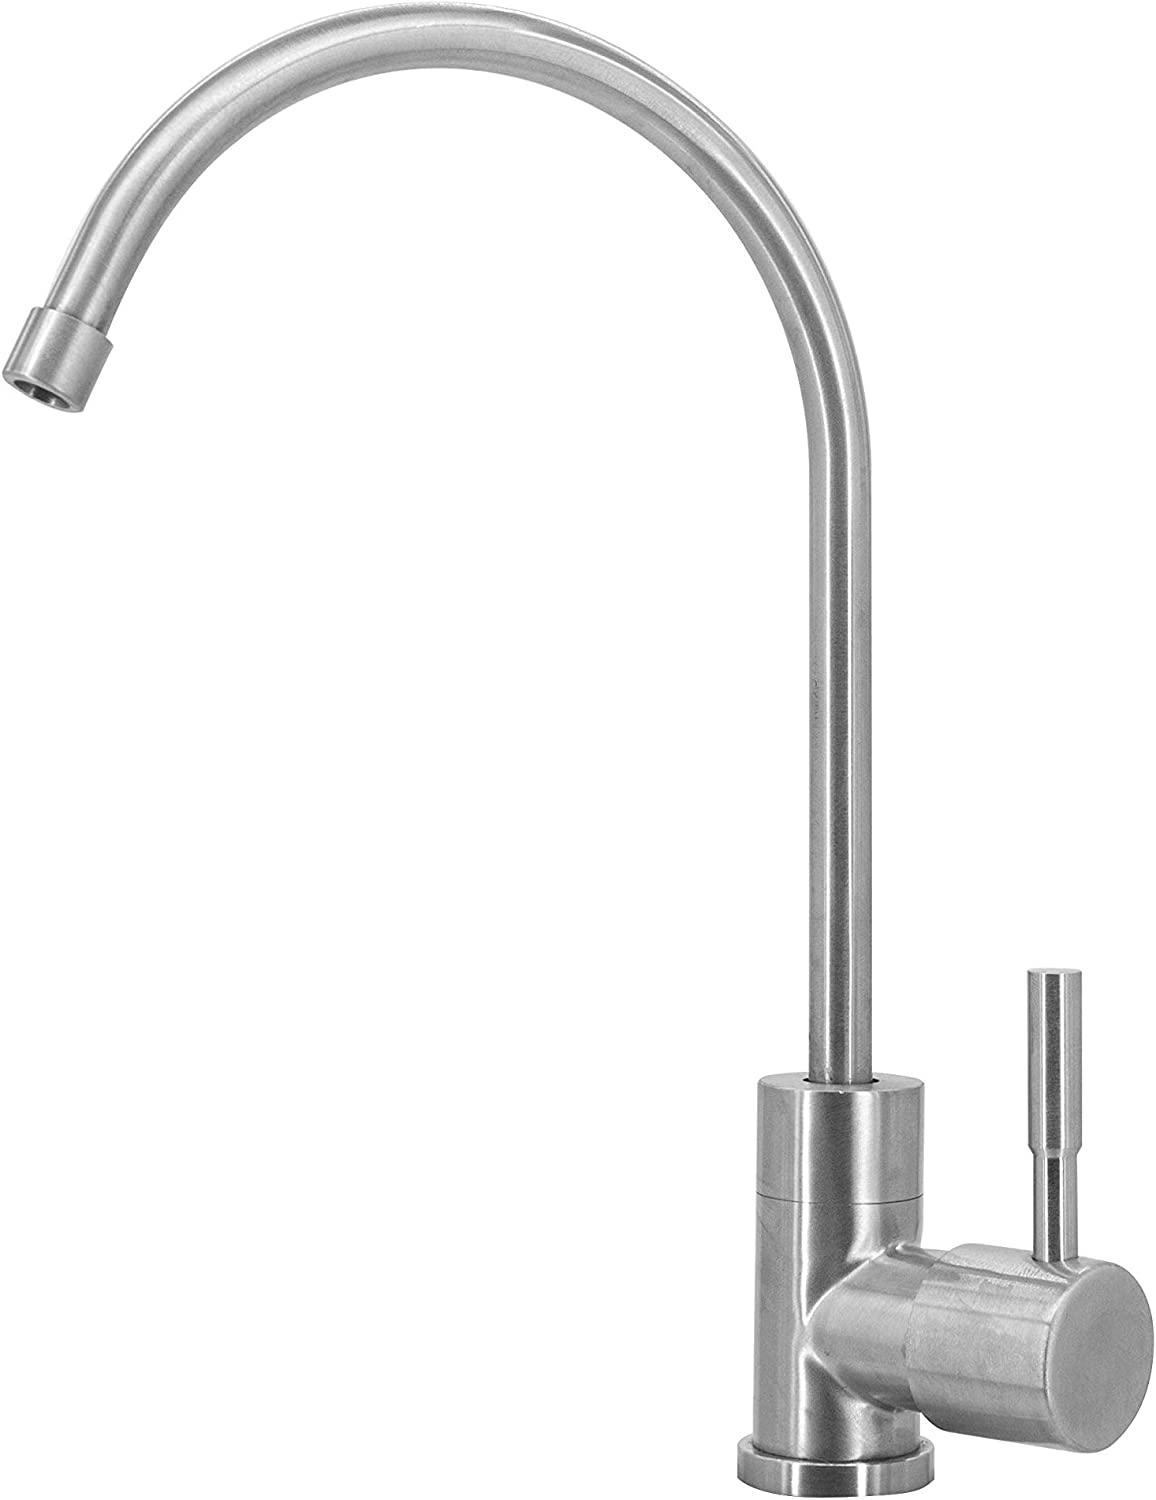 DuranRyan SUS304 Stainless Steel 100% Lead-Free Drinking Water Faucet for RO Drinking Water Reverse Osmosis